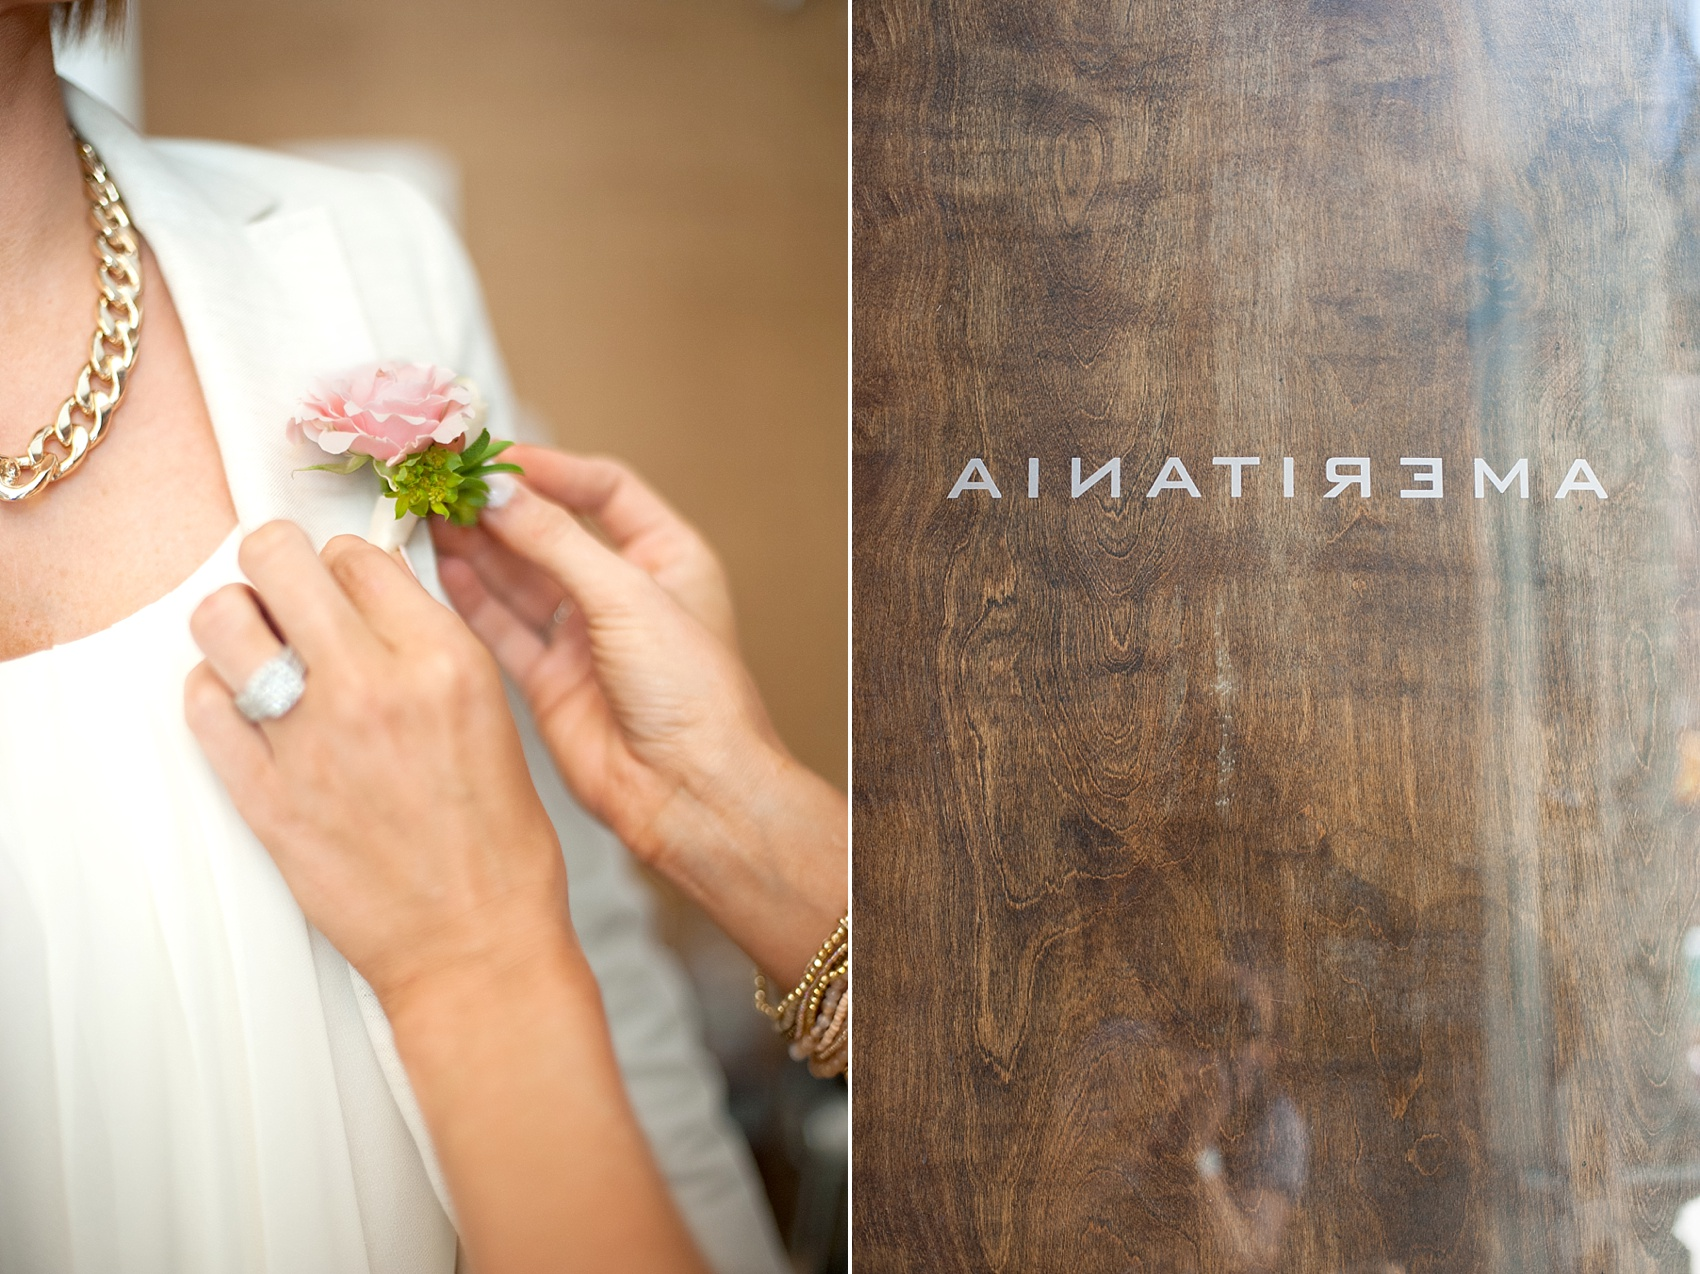 Brides get ready at NYC's Ameritana hotel, for her same sex wedding elopement in Central Park. Photos by Mikkel Paige Photography, #nycweddingphotographer. #elopement #marriageequality #equality #gayrights #weddingday